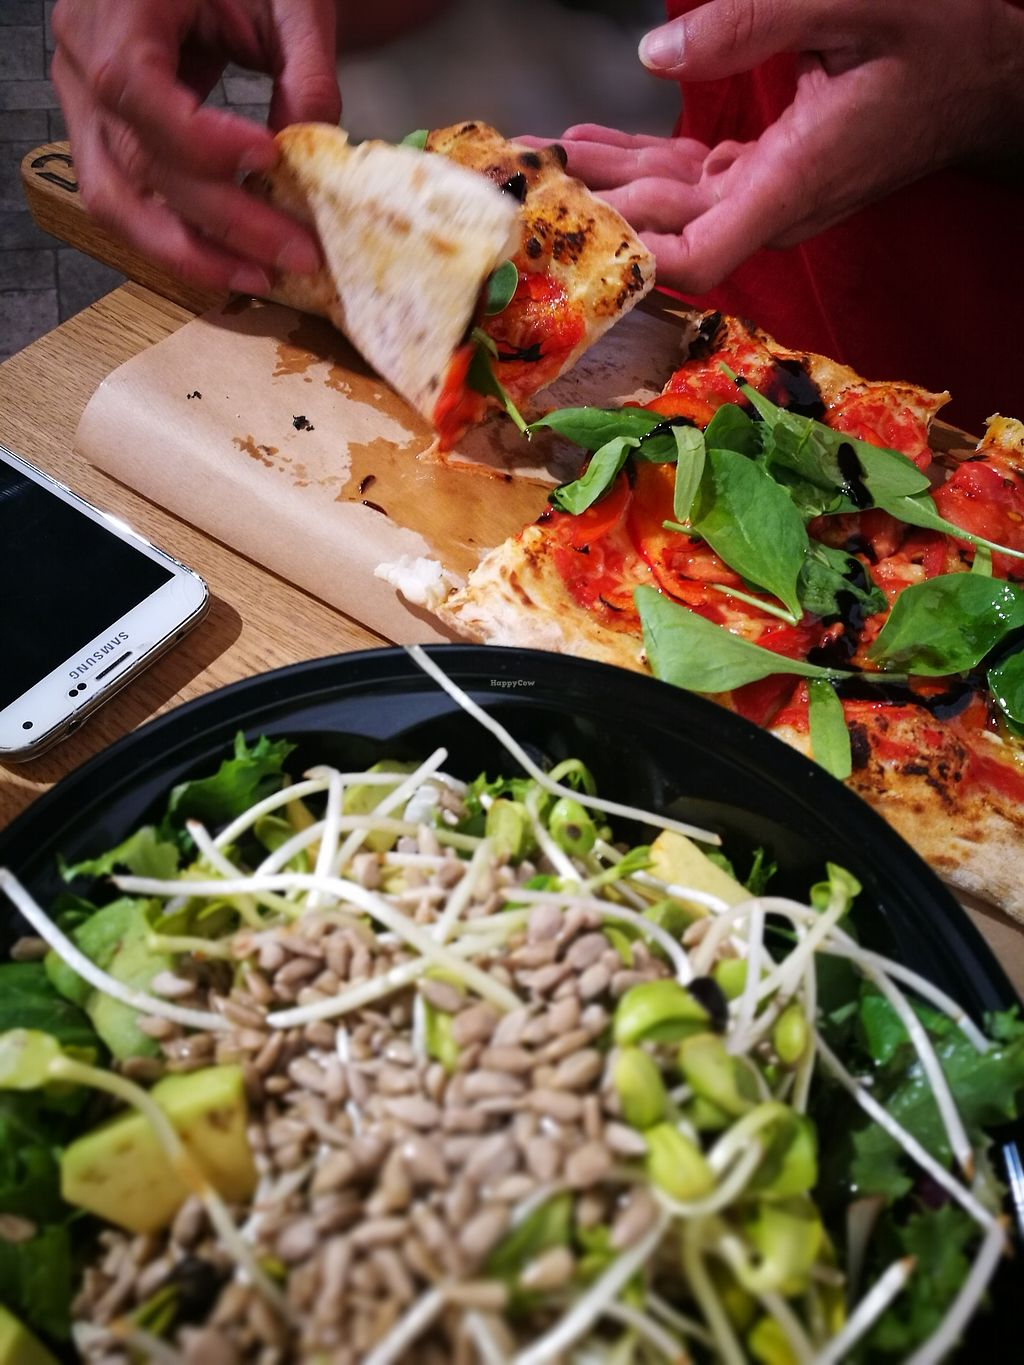 """Photo of Pizzatopia  by <a href=""""/members/profile/k-girl80"""">k-girl80</a> <br/>Pizza and salad <br/> October 12, 2017  - <a href='/contact/abuse/image/97708/314519'>Report</a>"""